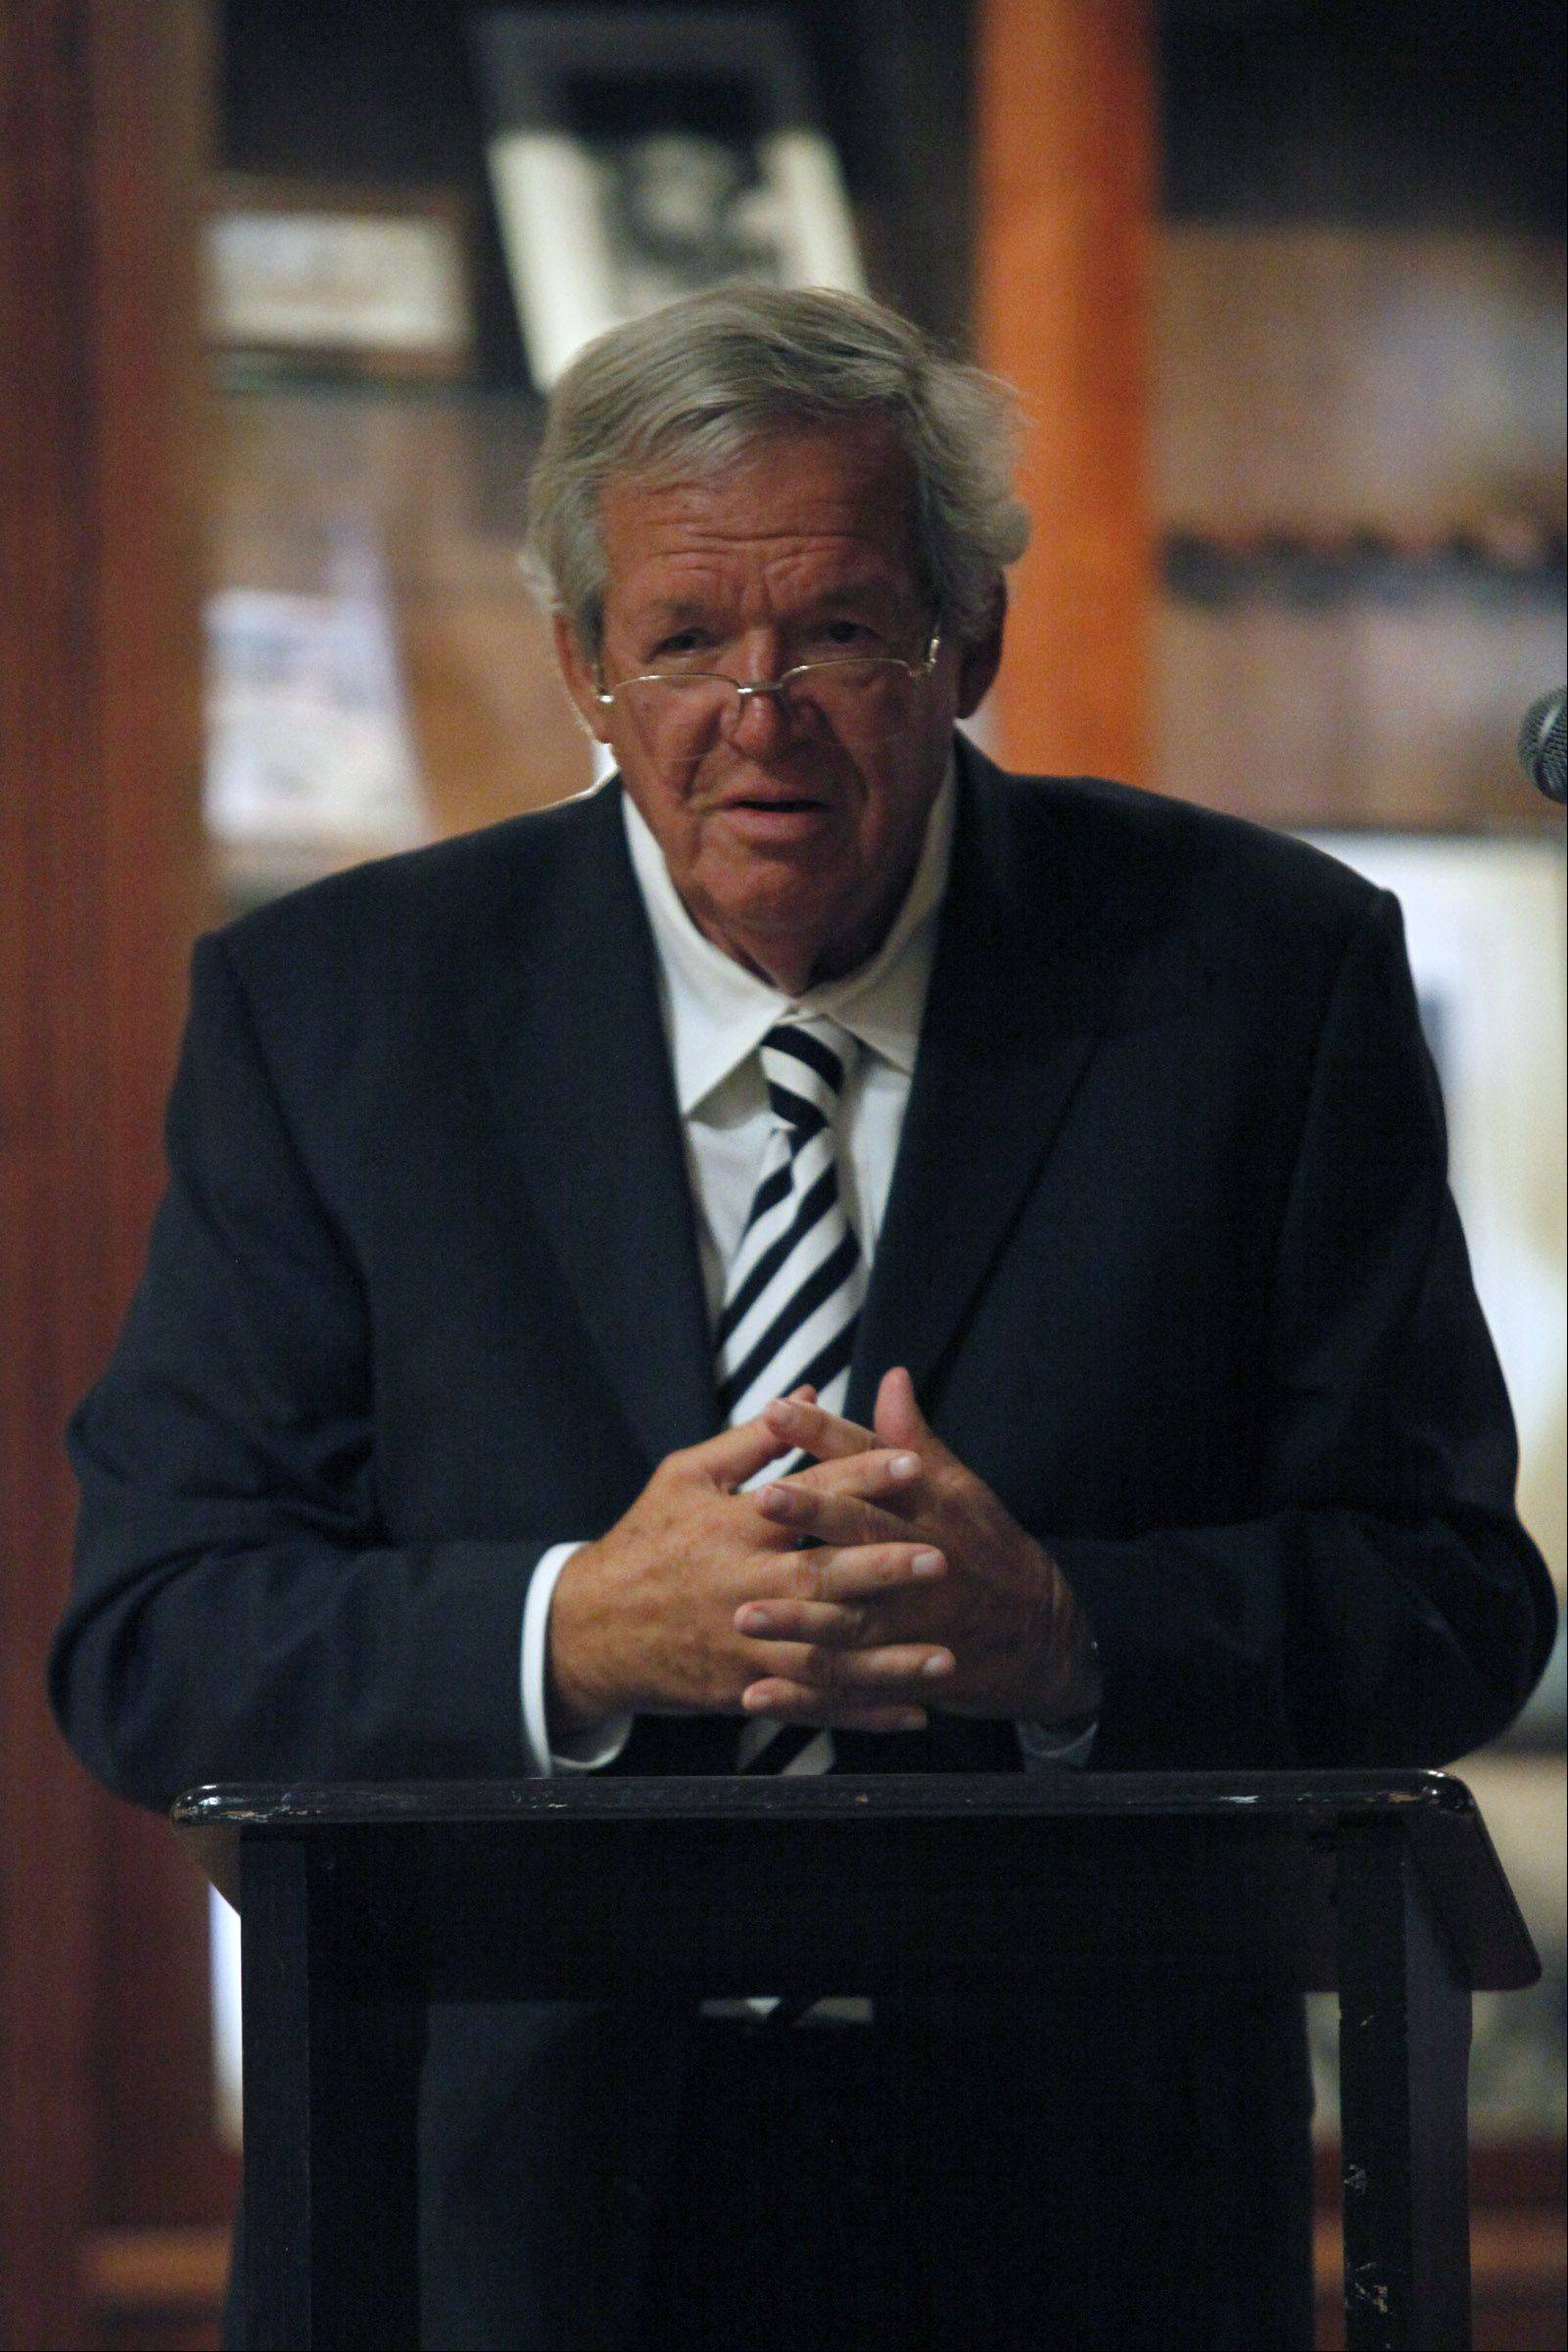 Former U.S. speaker of the House Dennis Hastert talks to a group of visitors at the Wheaton Center for History on Sunday, to mark the launch the center's new Civil War exhibit.